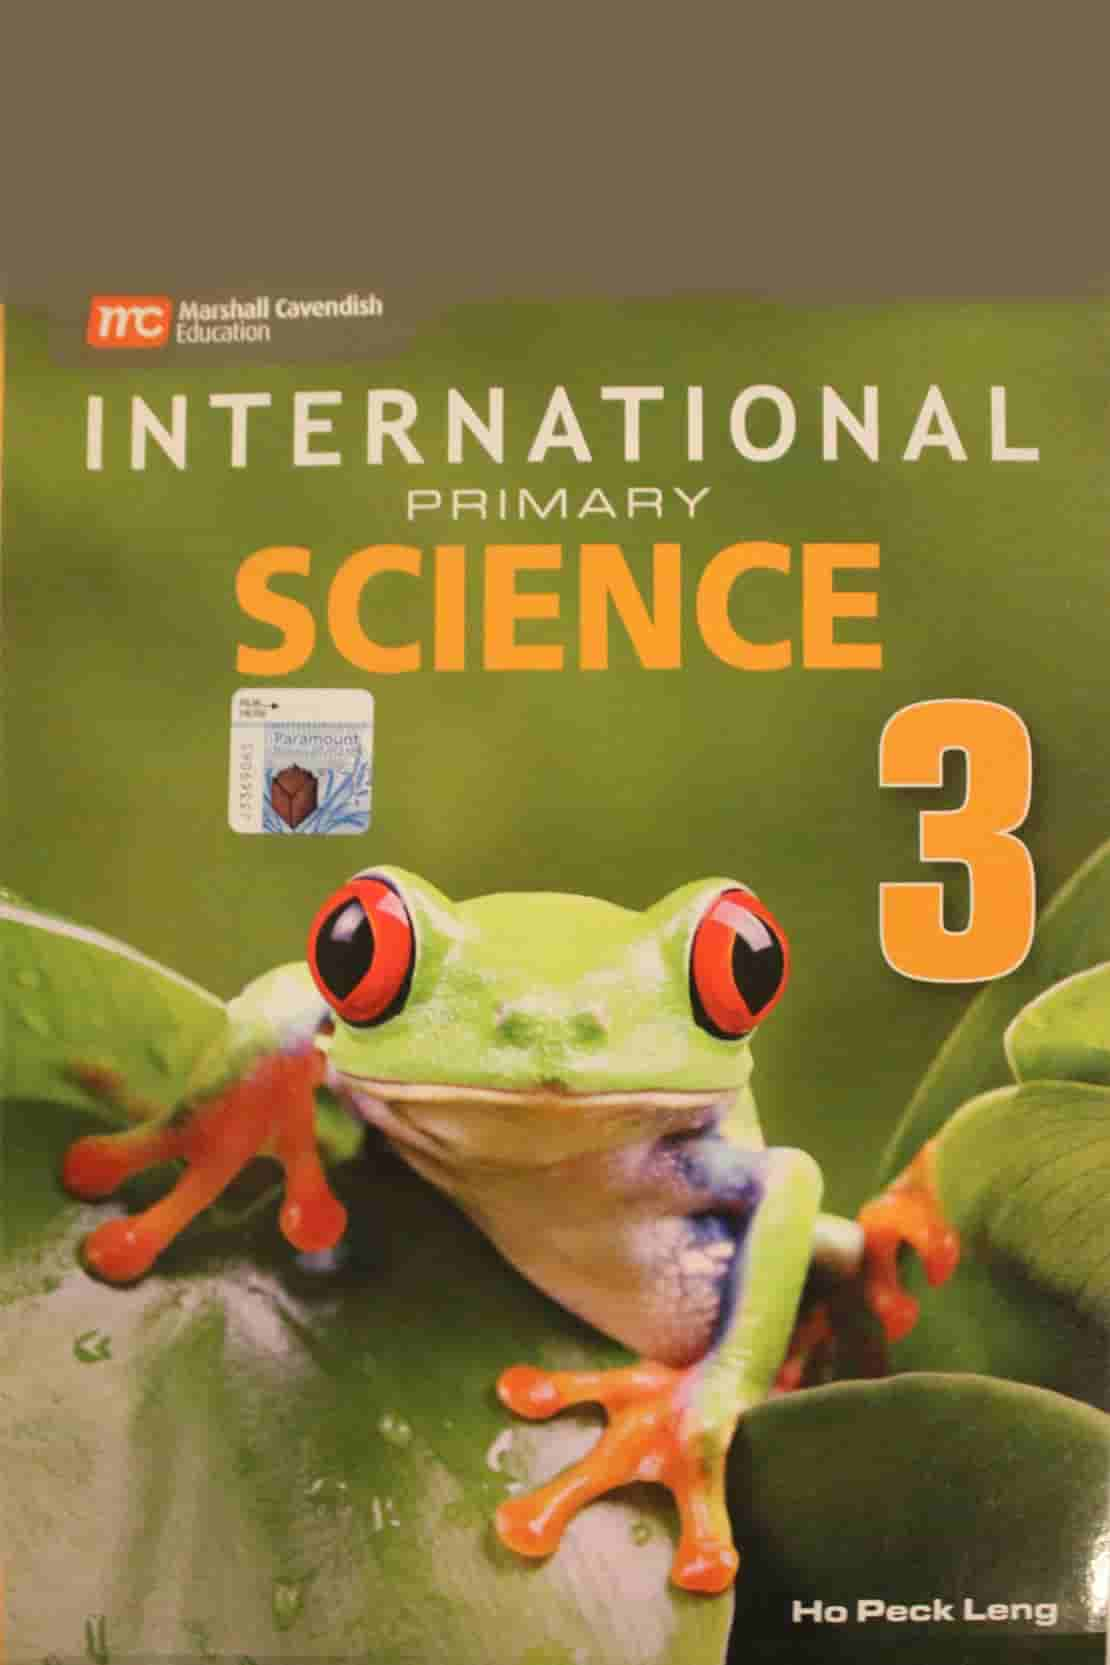 INTERNATIONAL PRIMARY SCIENCE TEXTBOOK 3